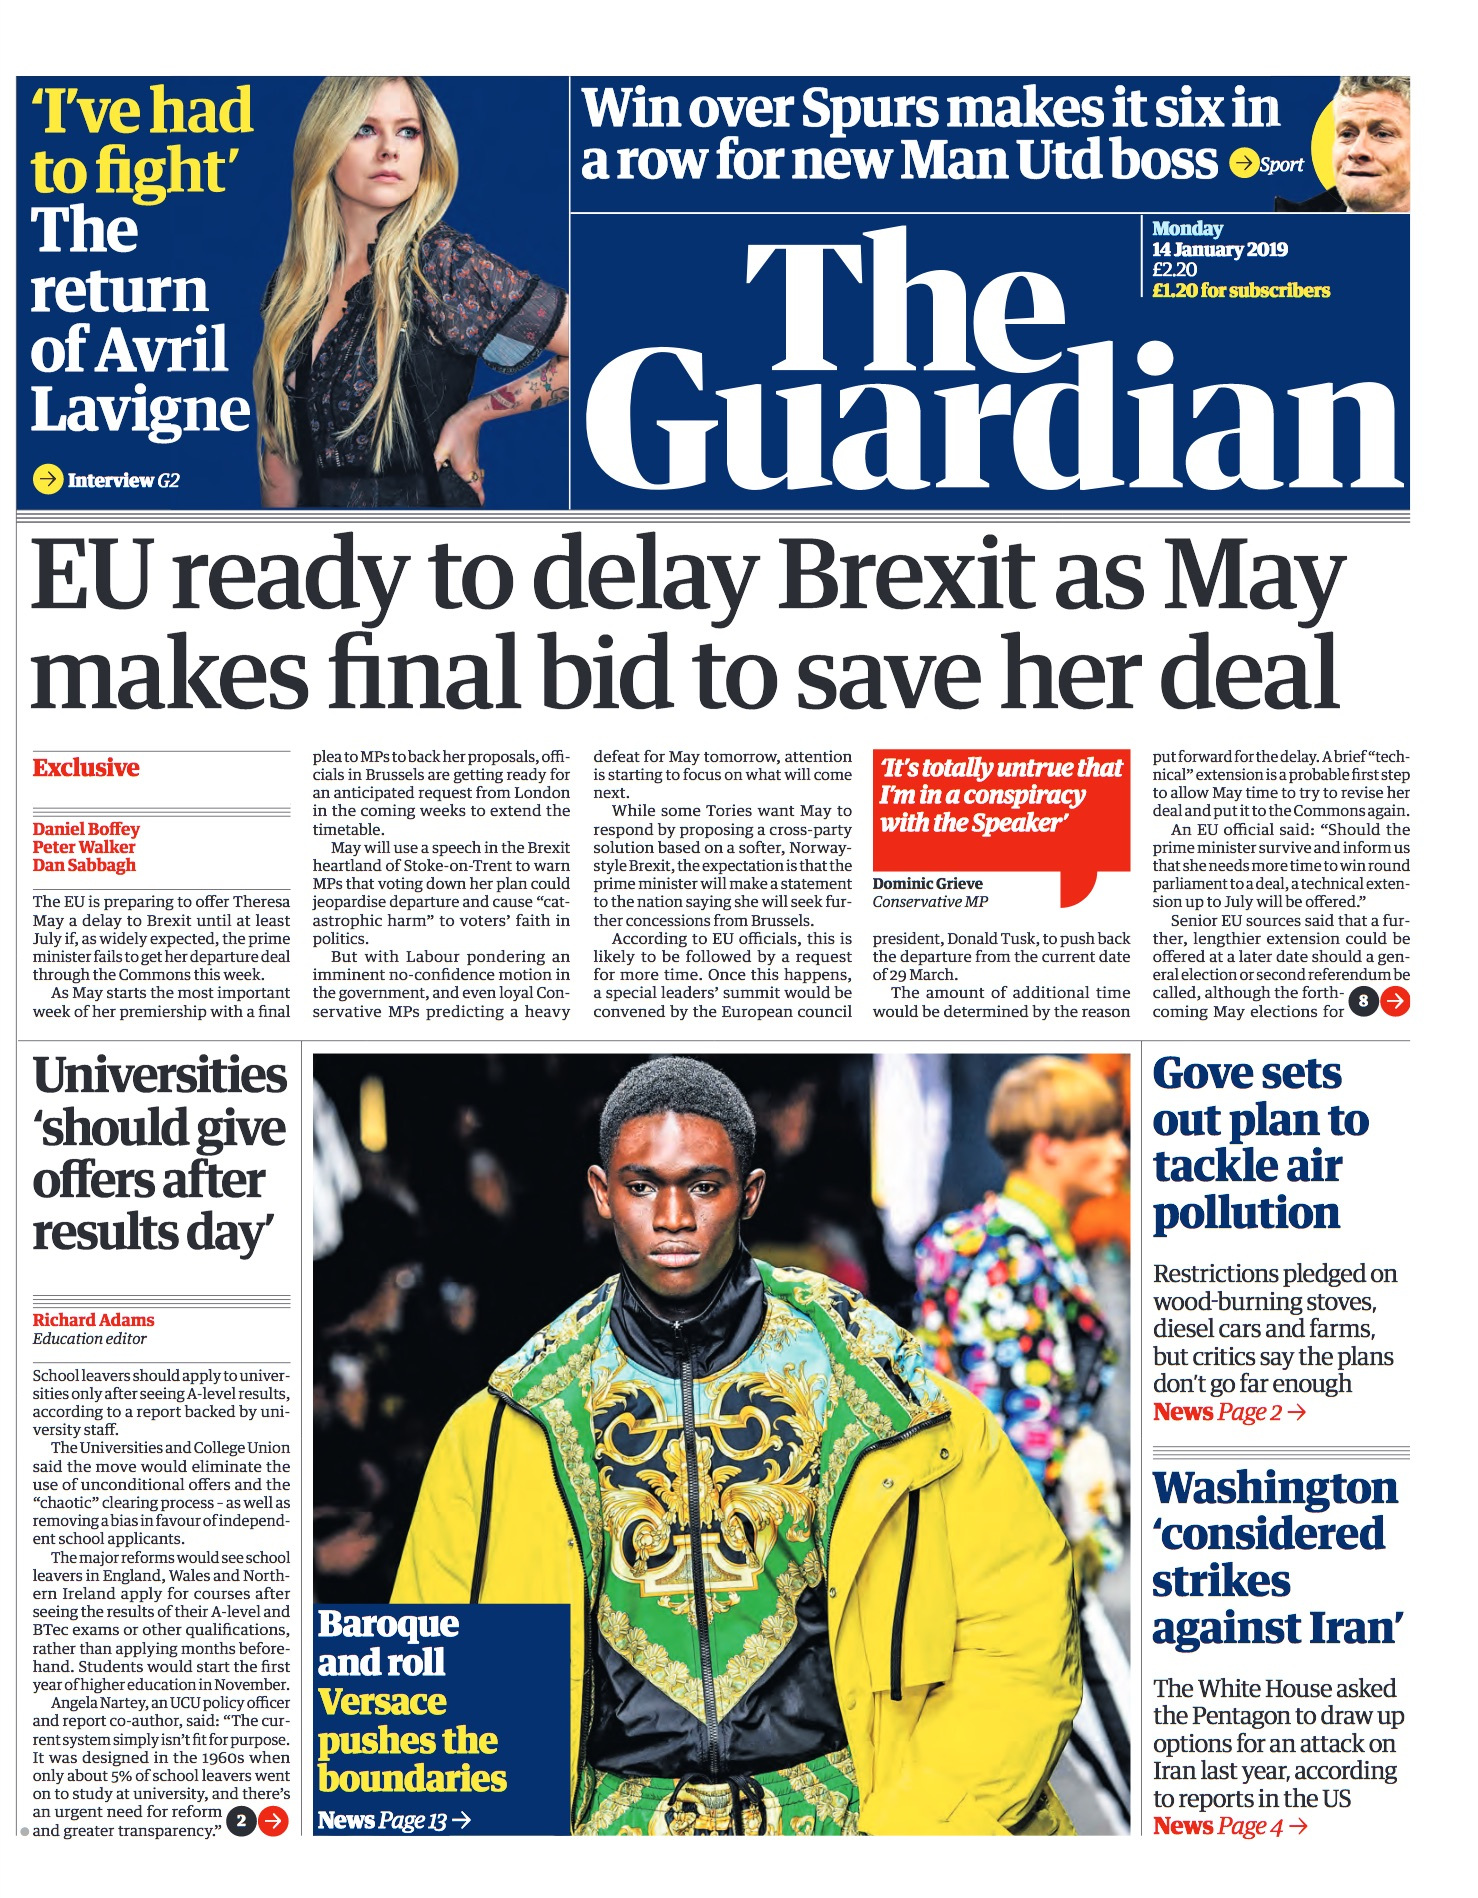 TheGuardian_FrontPage_011418.jpg